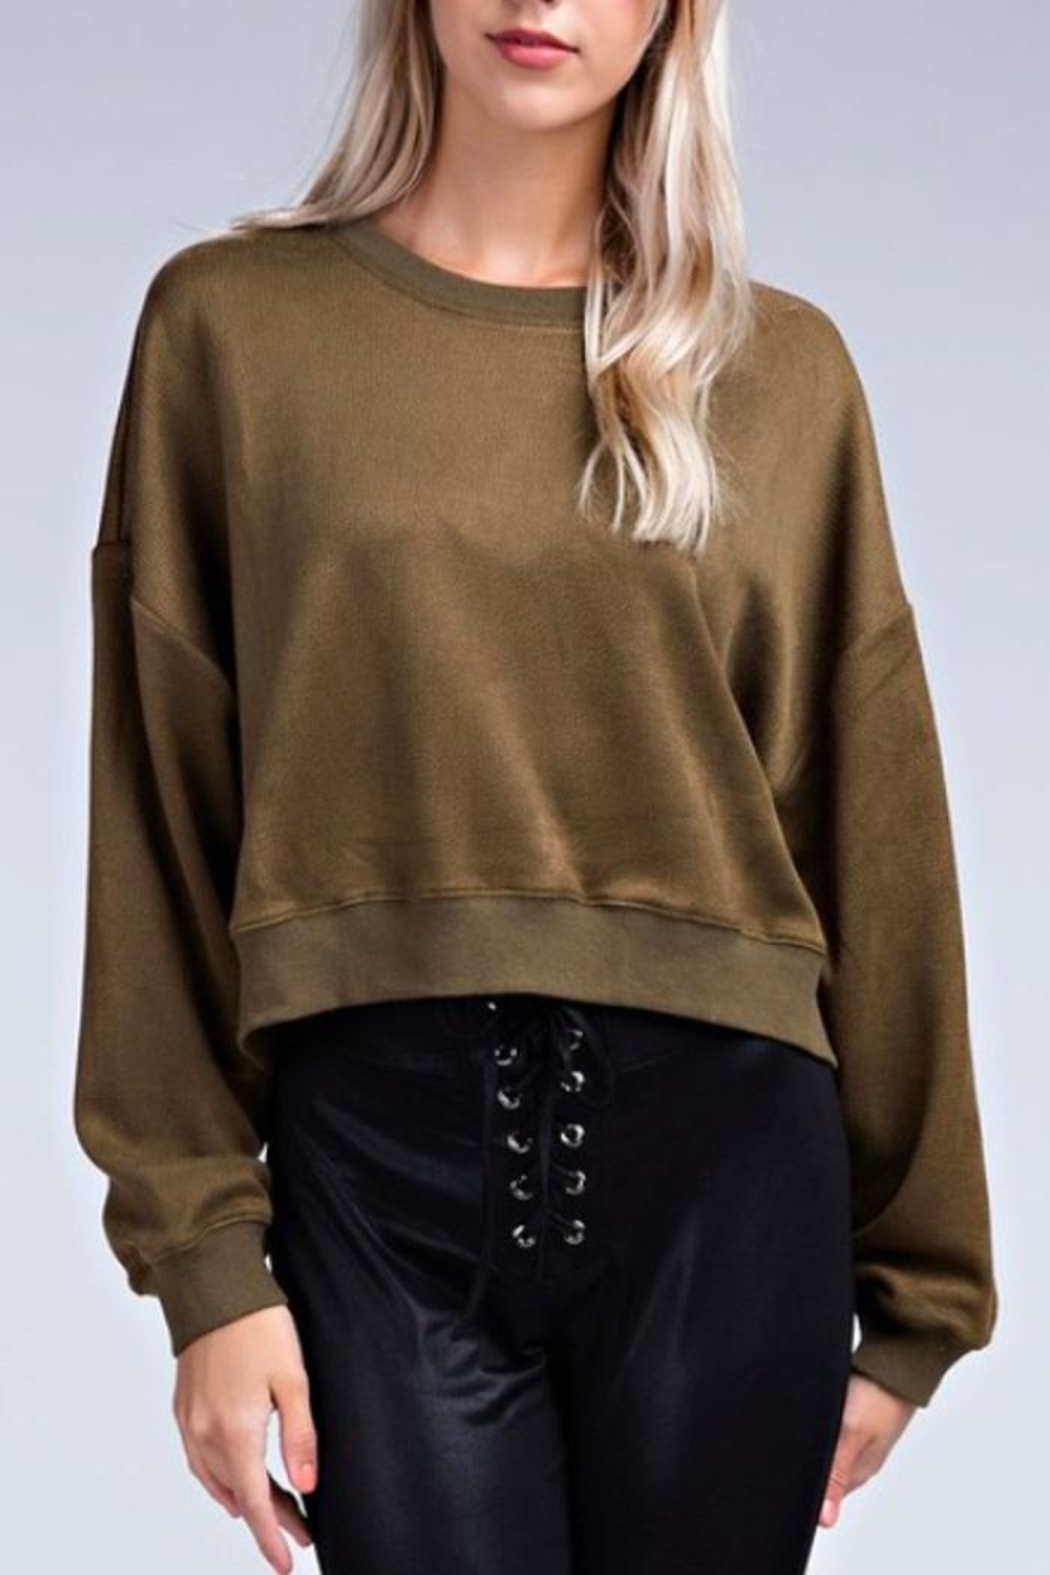 Davi & Dani Cropped Faux-Leather Sweatshirt - Main Image